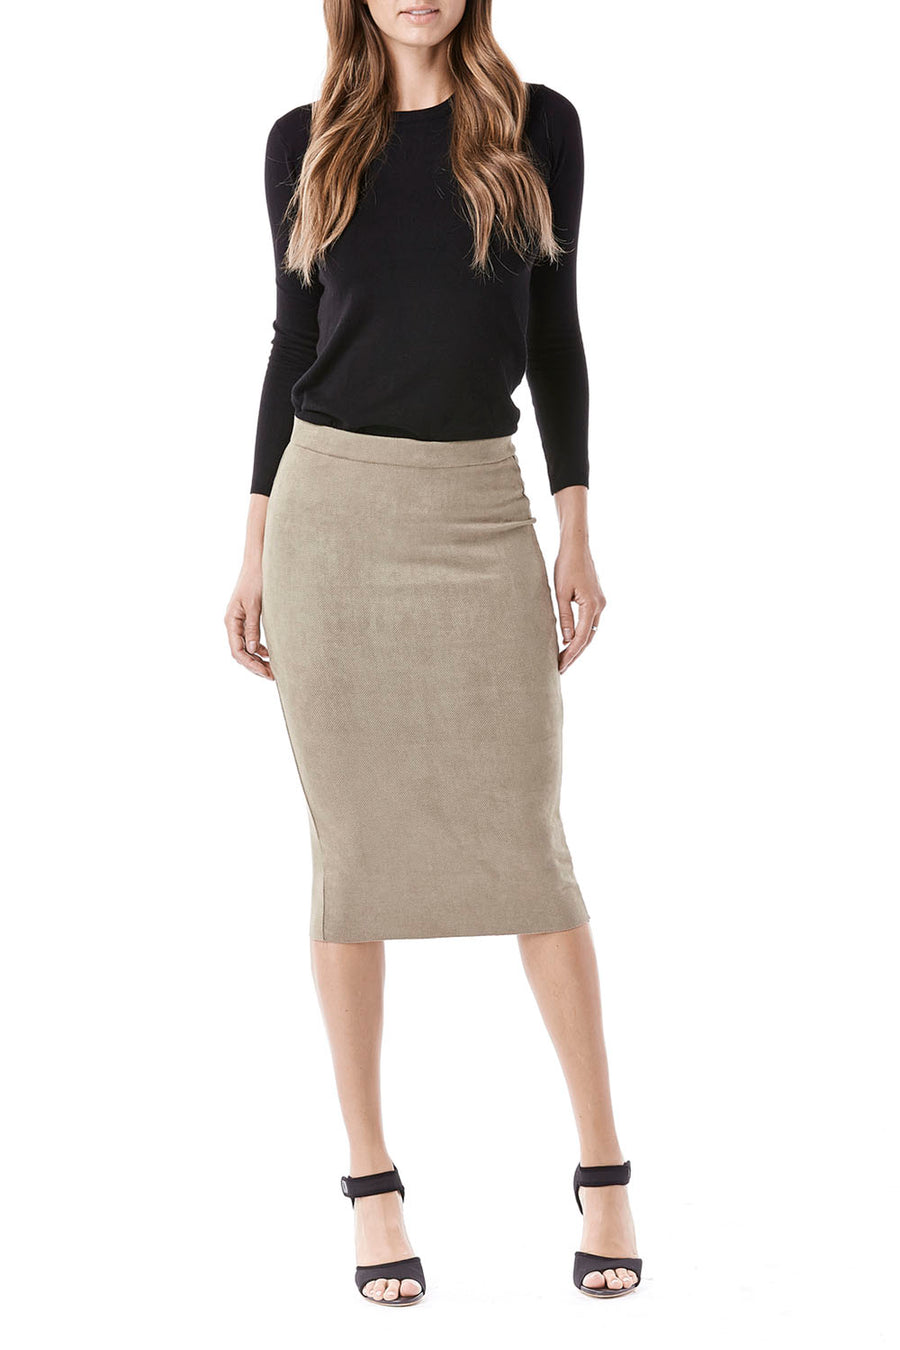 Pepper Pencil Skirt - level99jeans